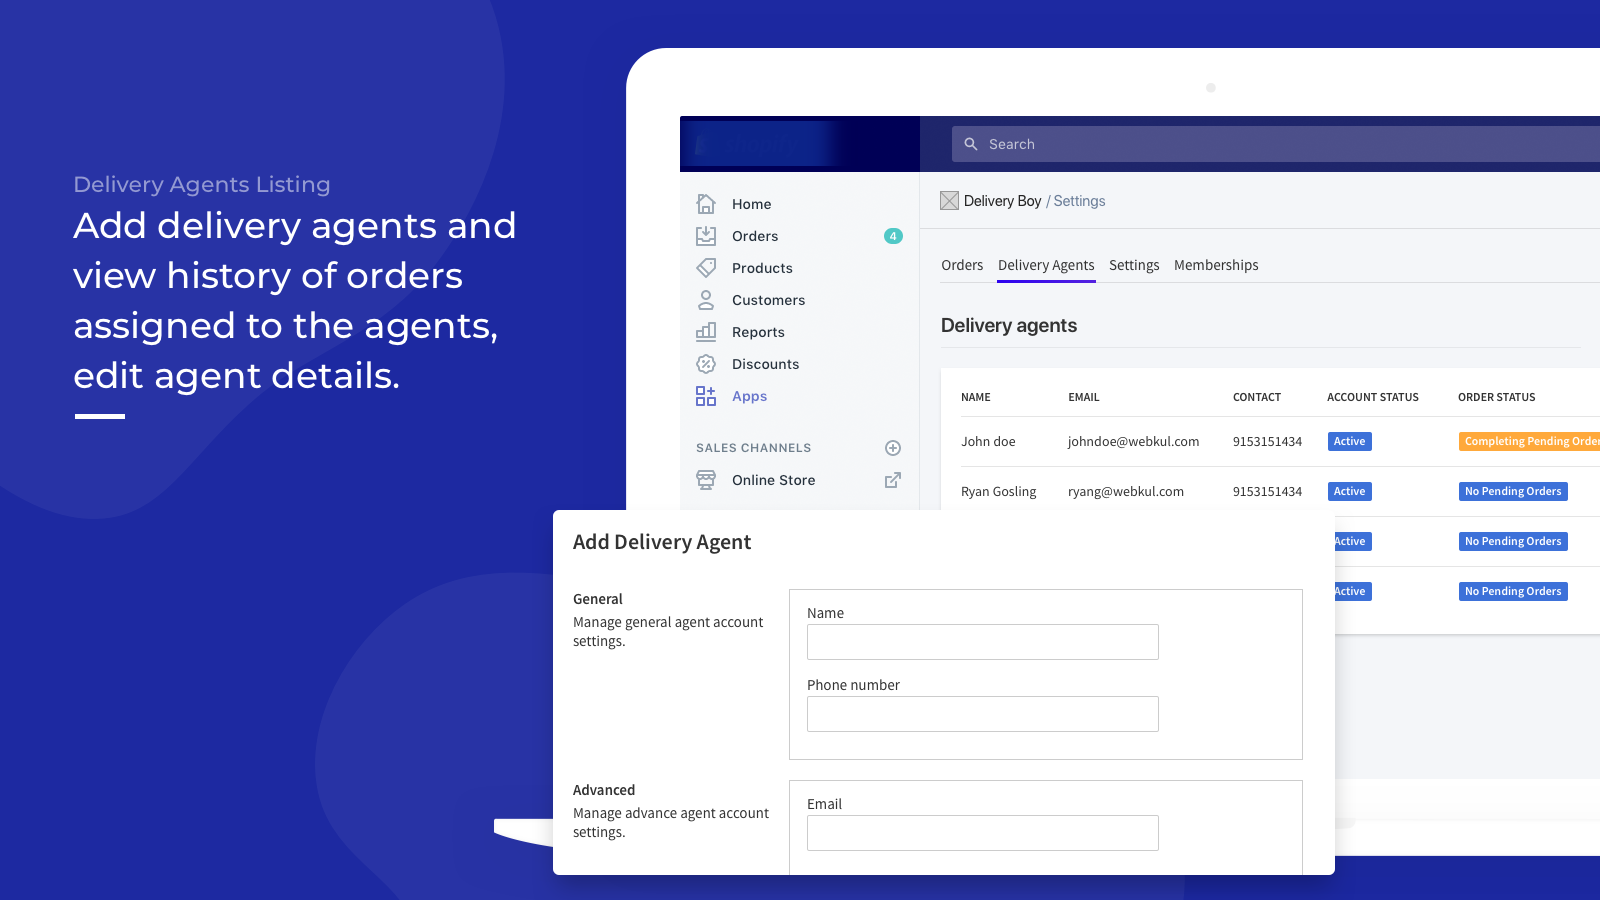 Agent Listing - Delivery Boy